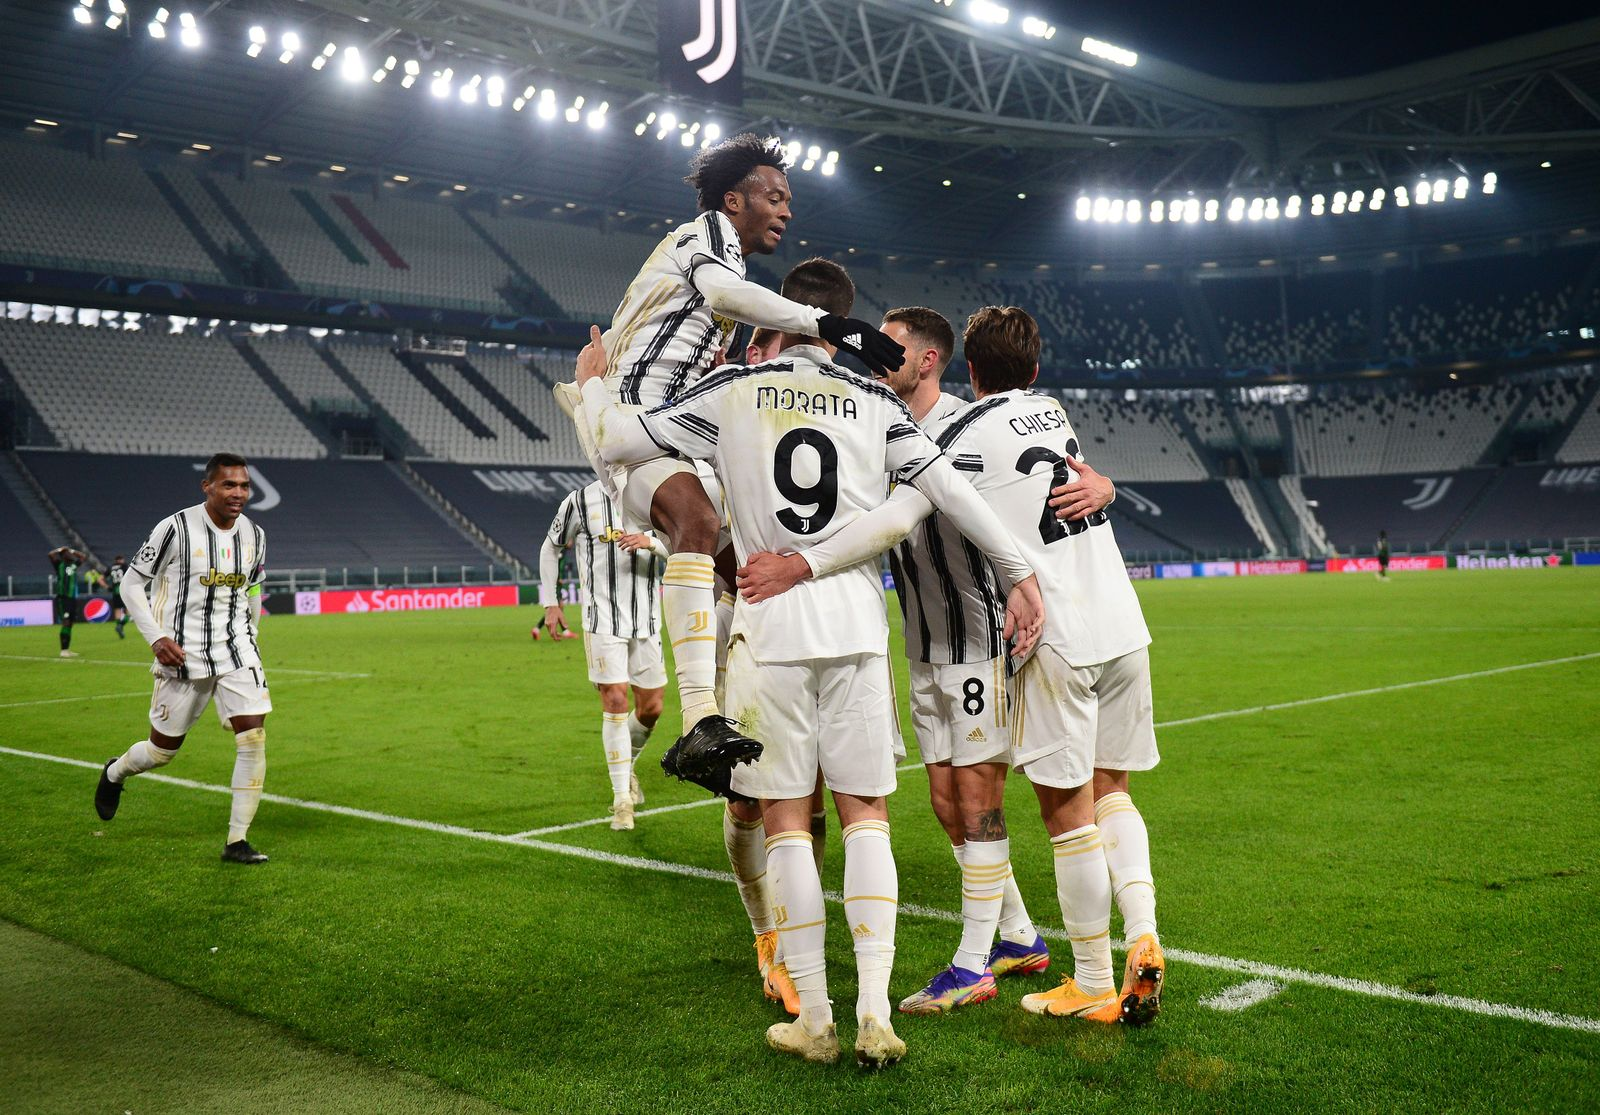 Juventus march into last 16 with 2-1 win over Ferencvaros - International  Champions Cup